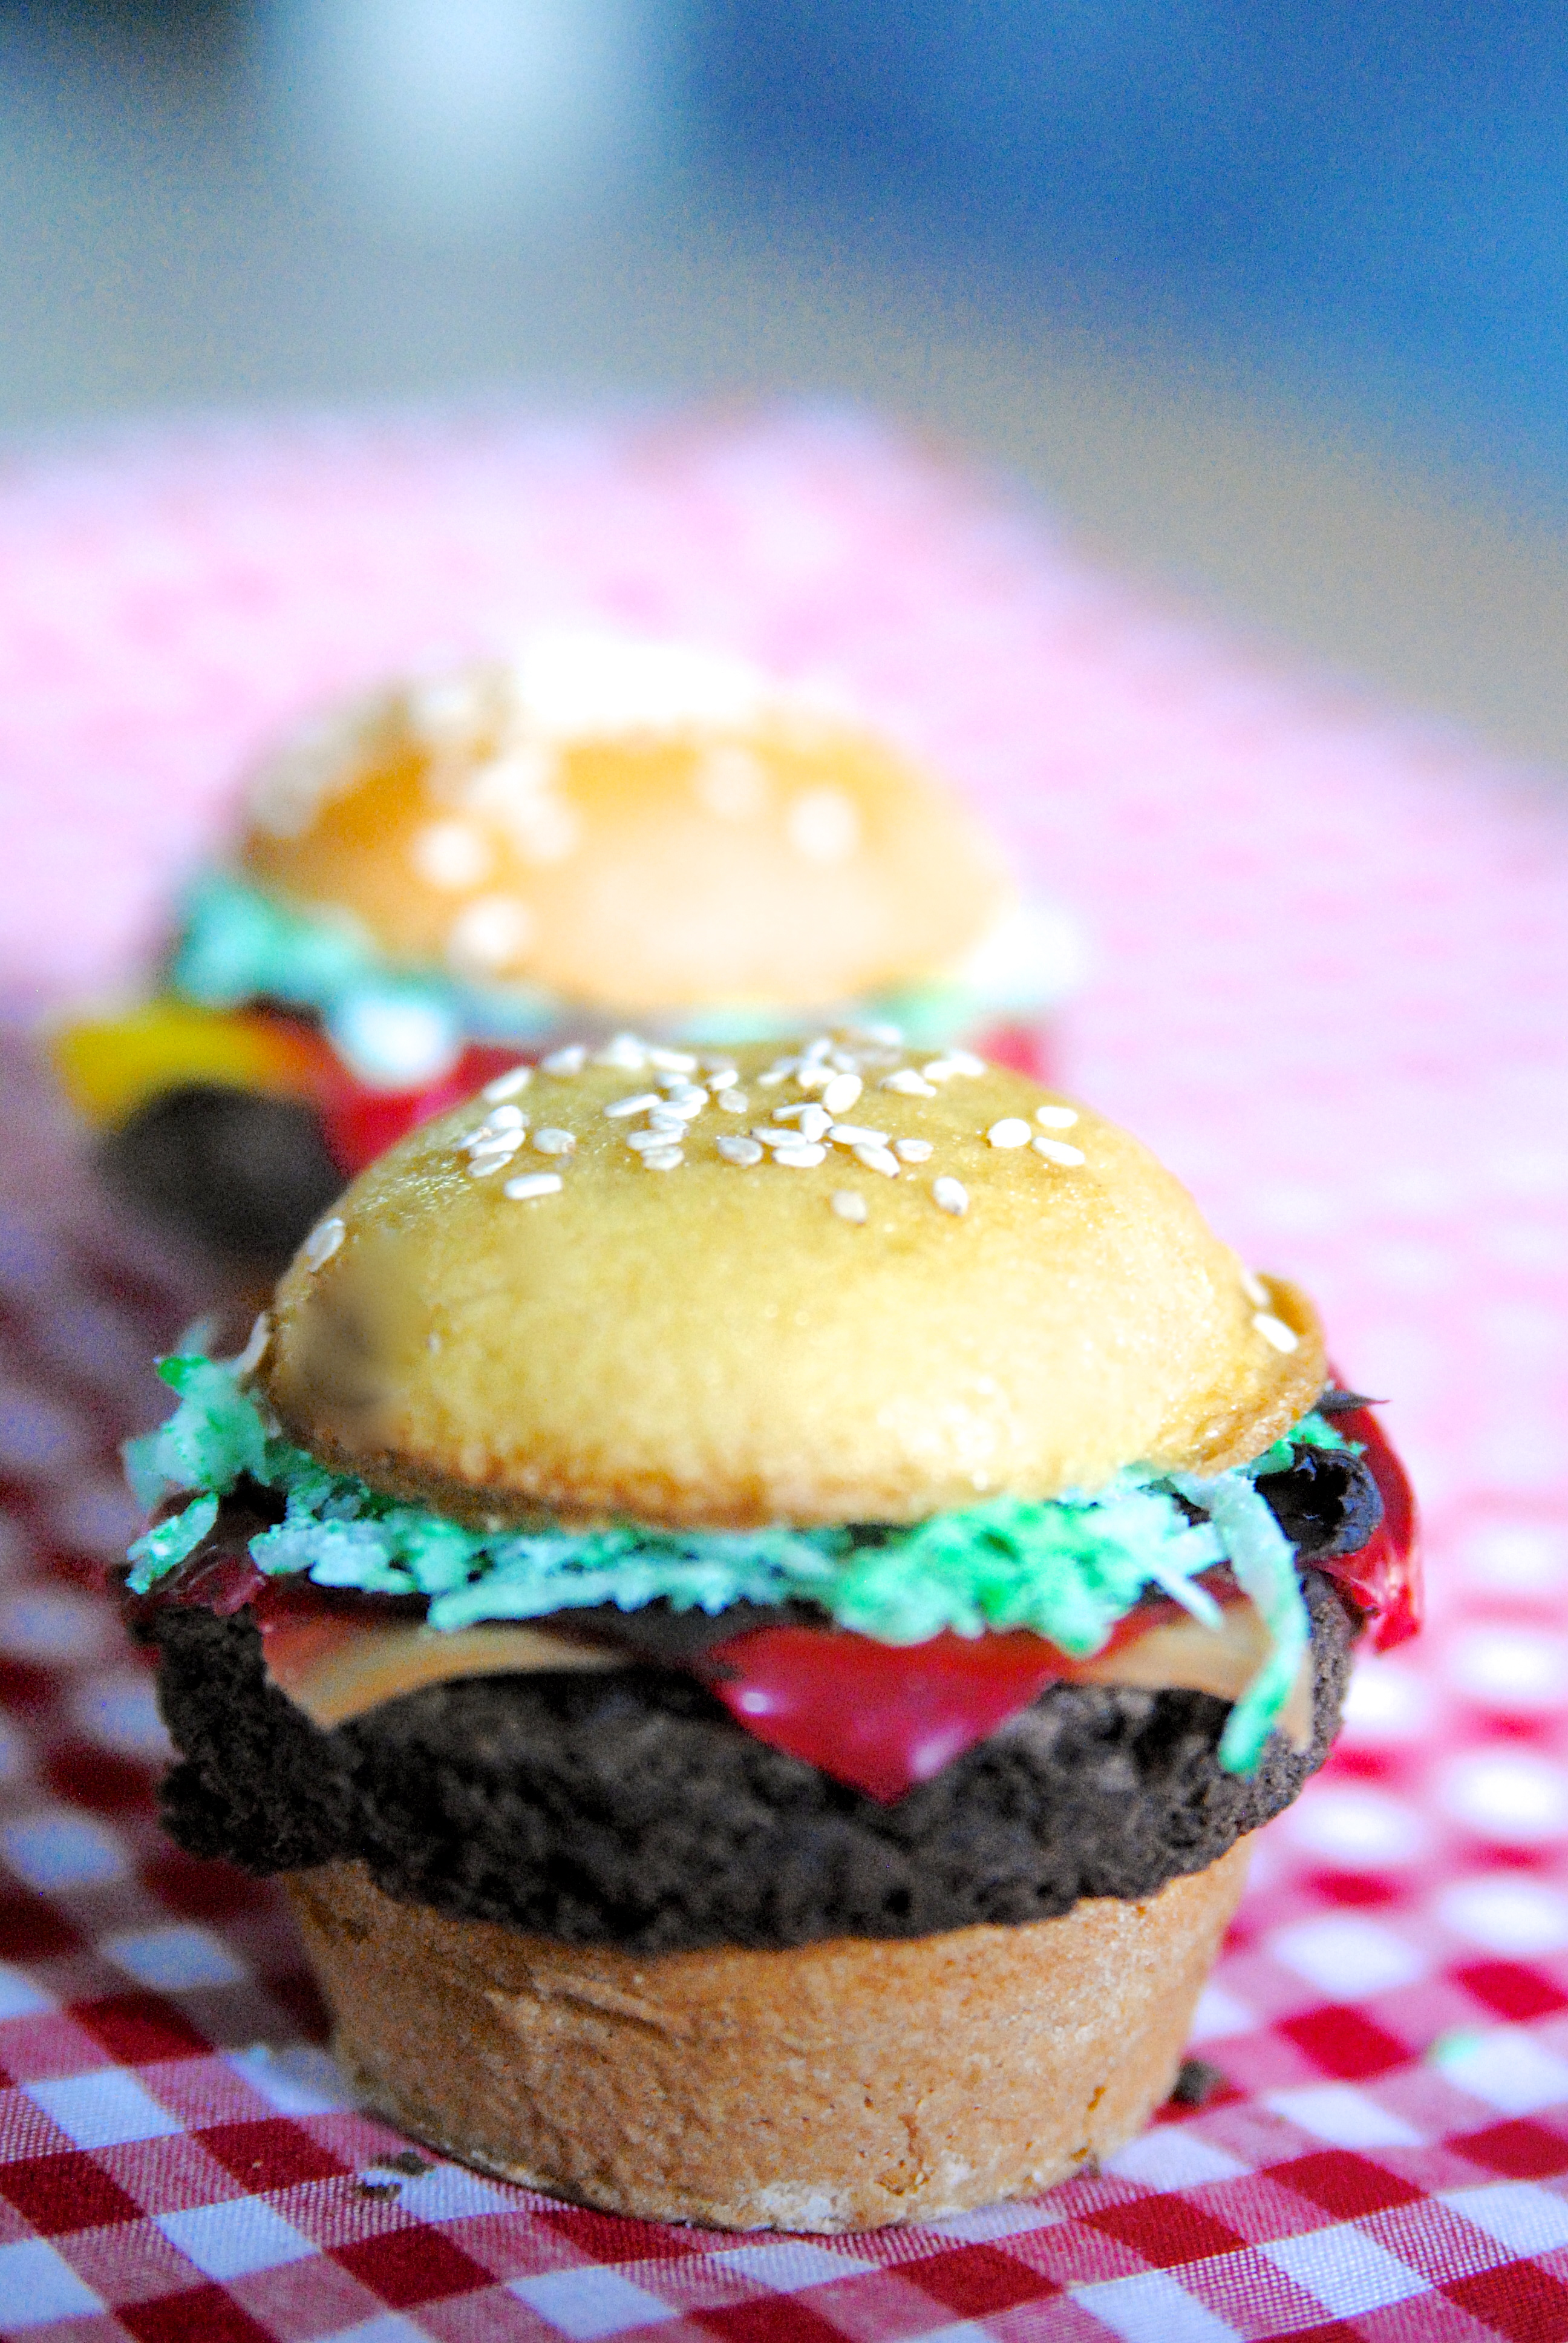 Shhhh... these burgers have a secret. They're not burgers! They're delicious cupcakes!